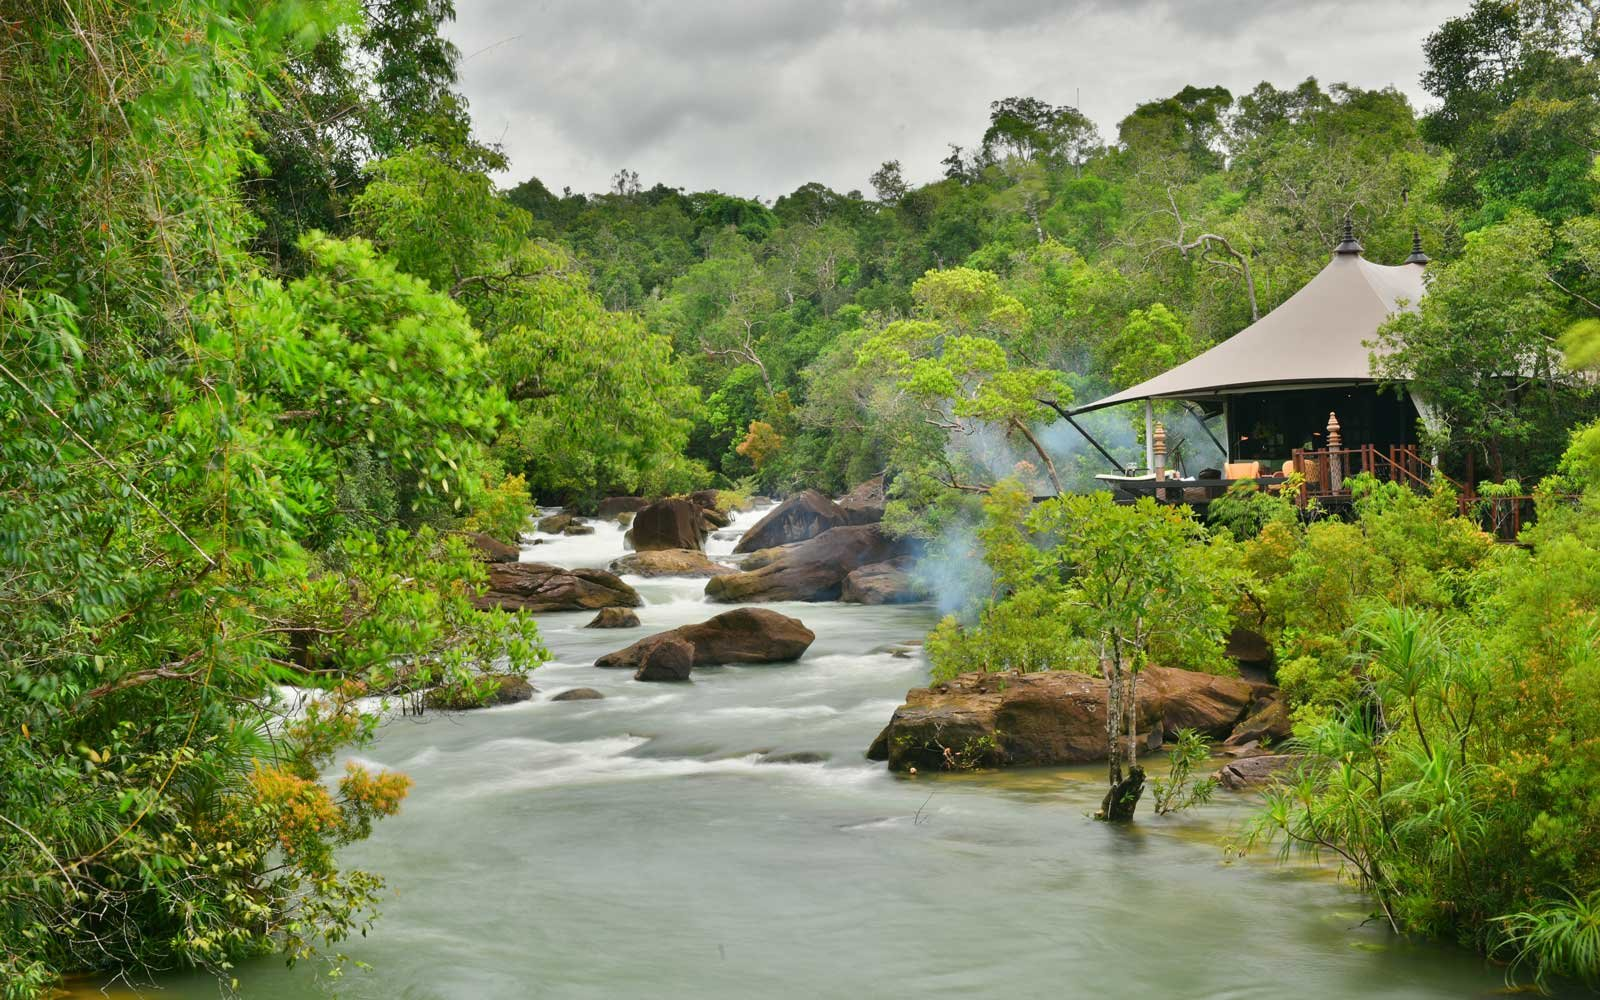 The Shinta Mani Wild Lodge in Cambodia